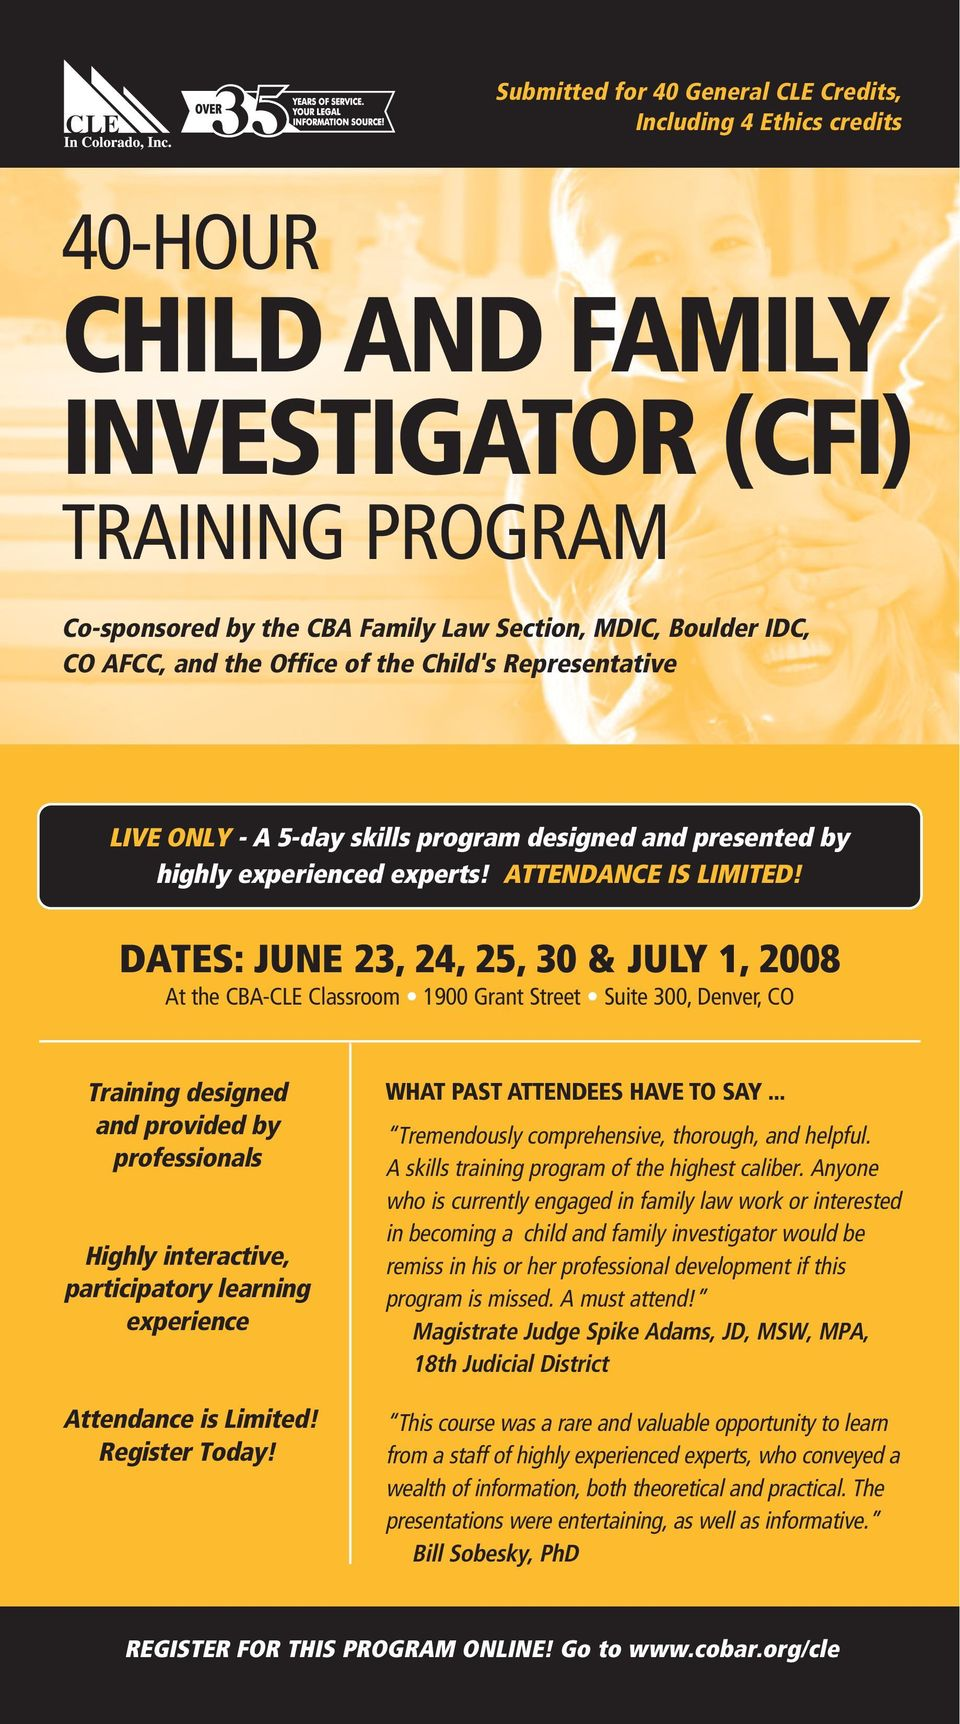 DATES: JUNE 23, 24, 25, 30 & JULY 1, 2008 At the CBA-CLE Classroom 1900 Grant Street Suite 300, Denver, CO Training designed and provided by professionals Highly interactive, participatory learning